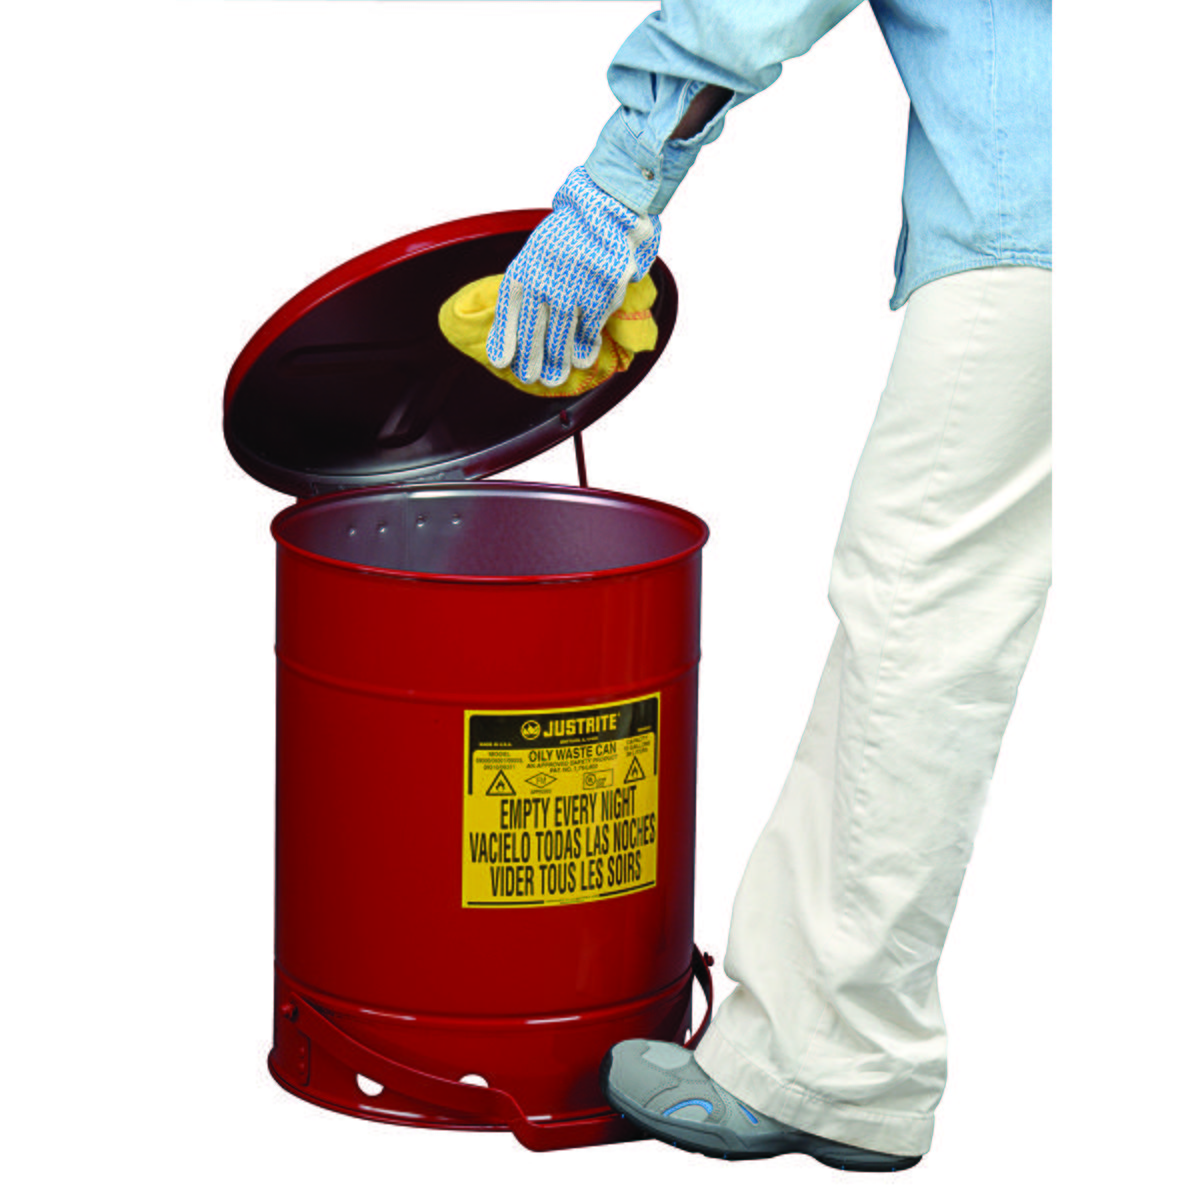 Oily Waste Can, 10 gallon, foot-operated self-closing cover, Red.